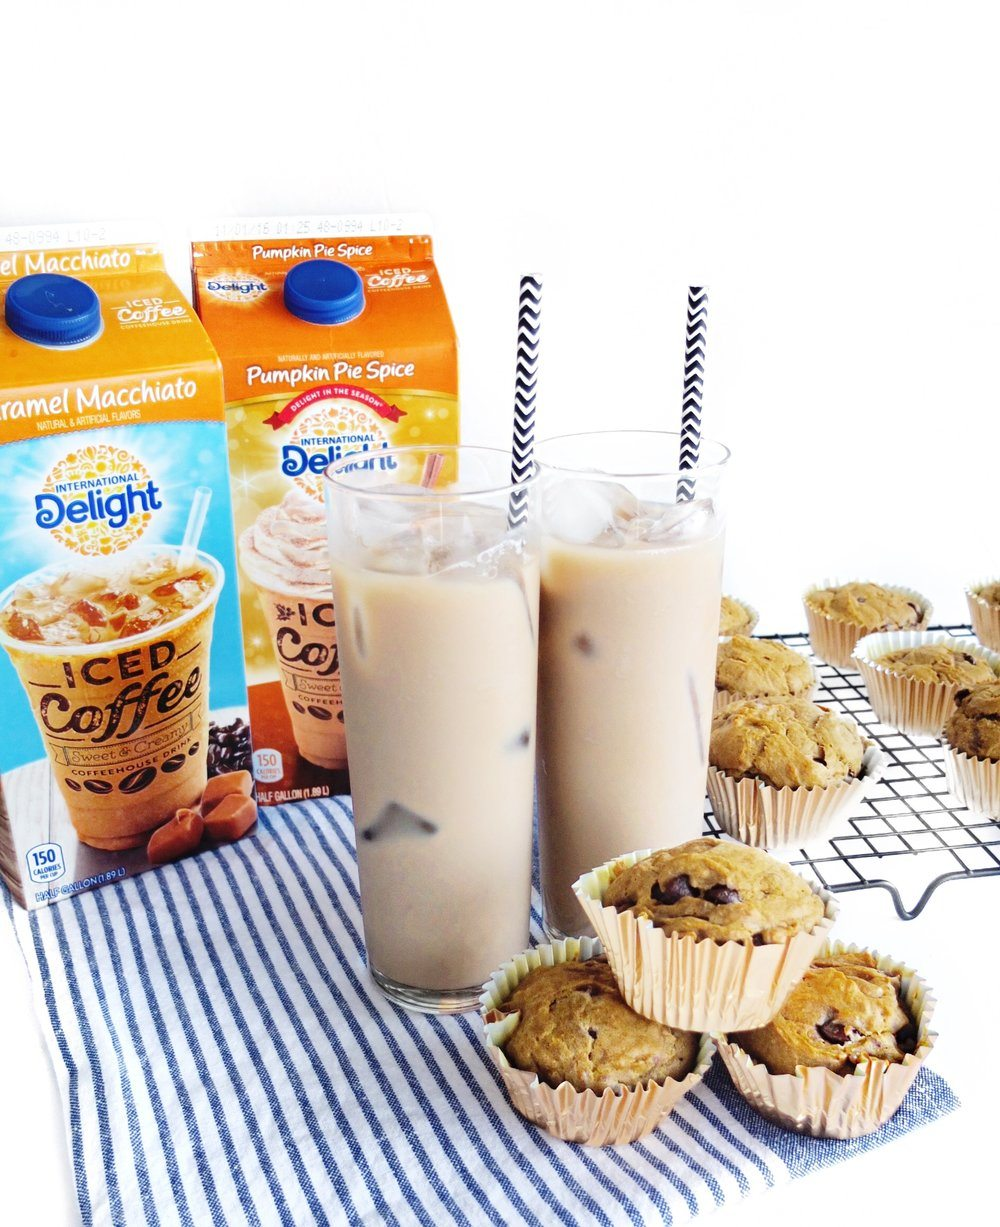 A recipe for easy to make Pumpkin Mocha Chip Muffins made with pumpkin, International Delight Iced Coffee Pumpkin Pie Spice, and chocolate chips. #AD #FoundMyDelight